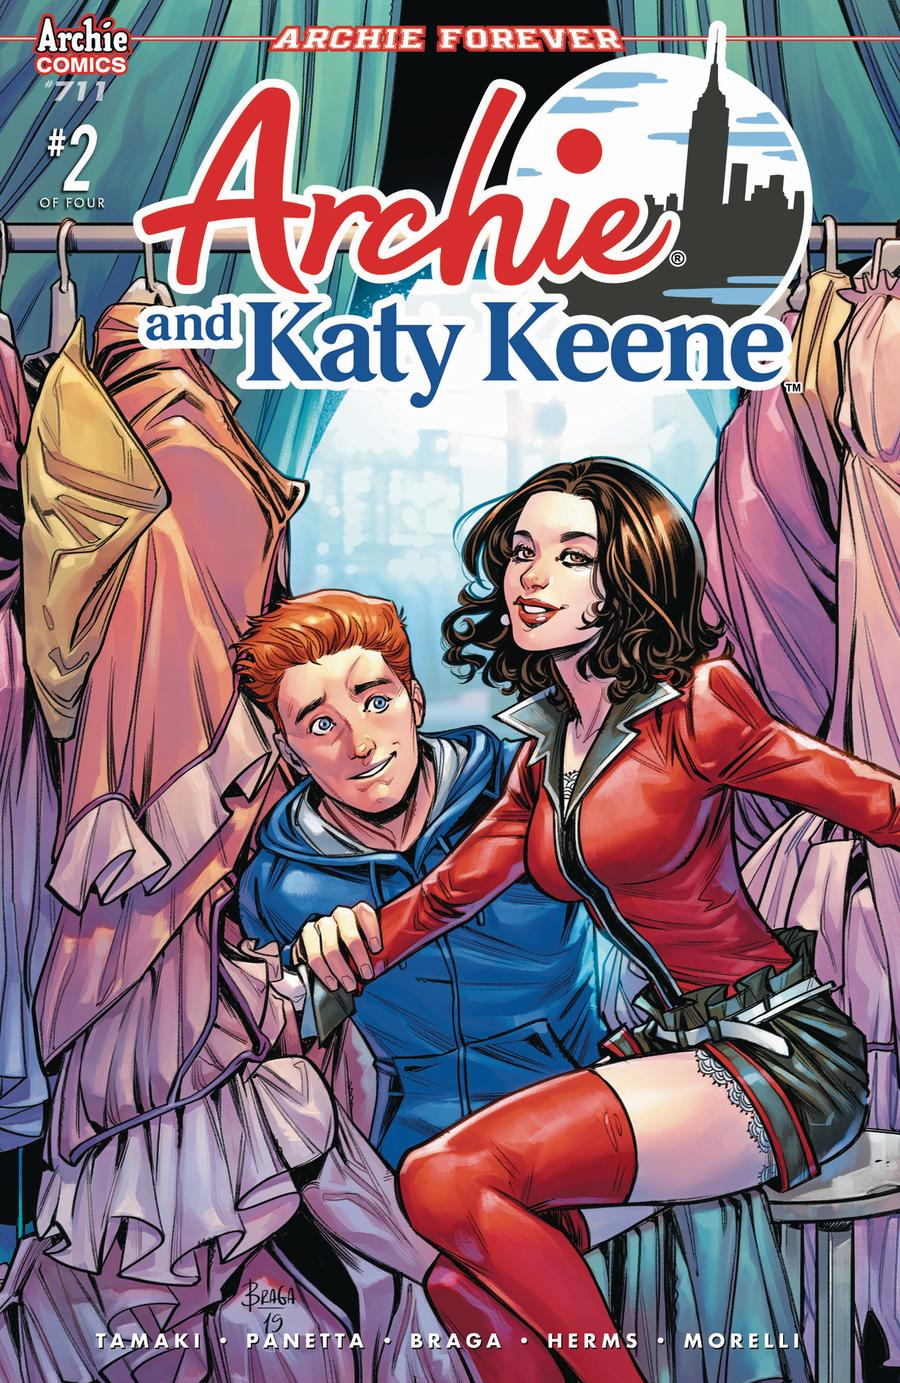 Archie Vol 2 #711 Archie And Katy Keene Part 2 Cover A Regular Laura Braga Cover